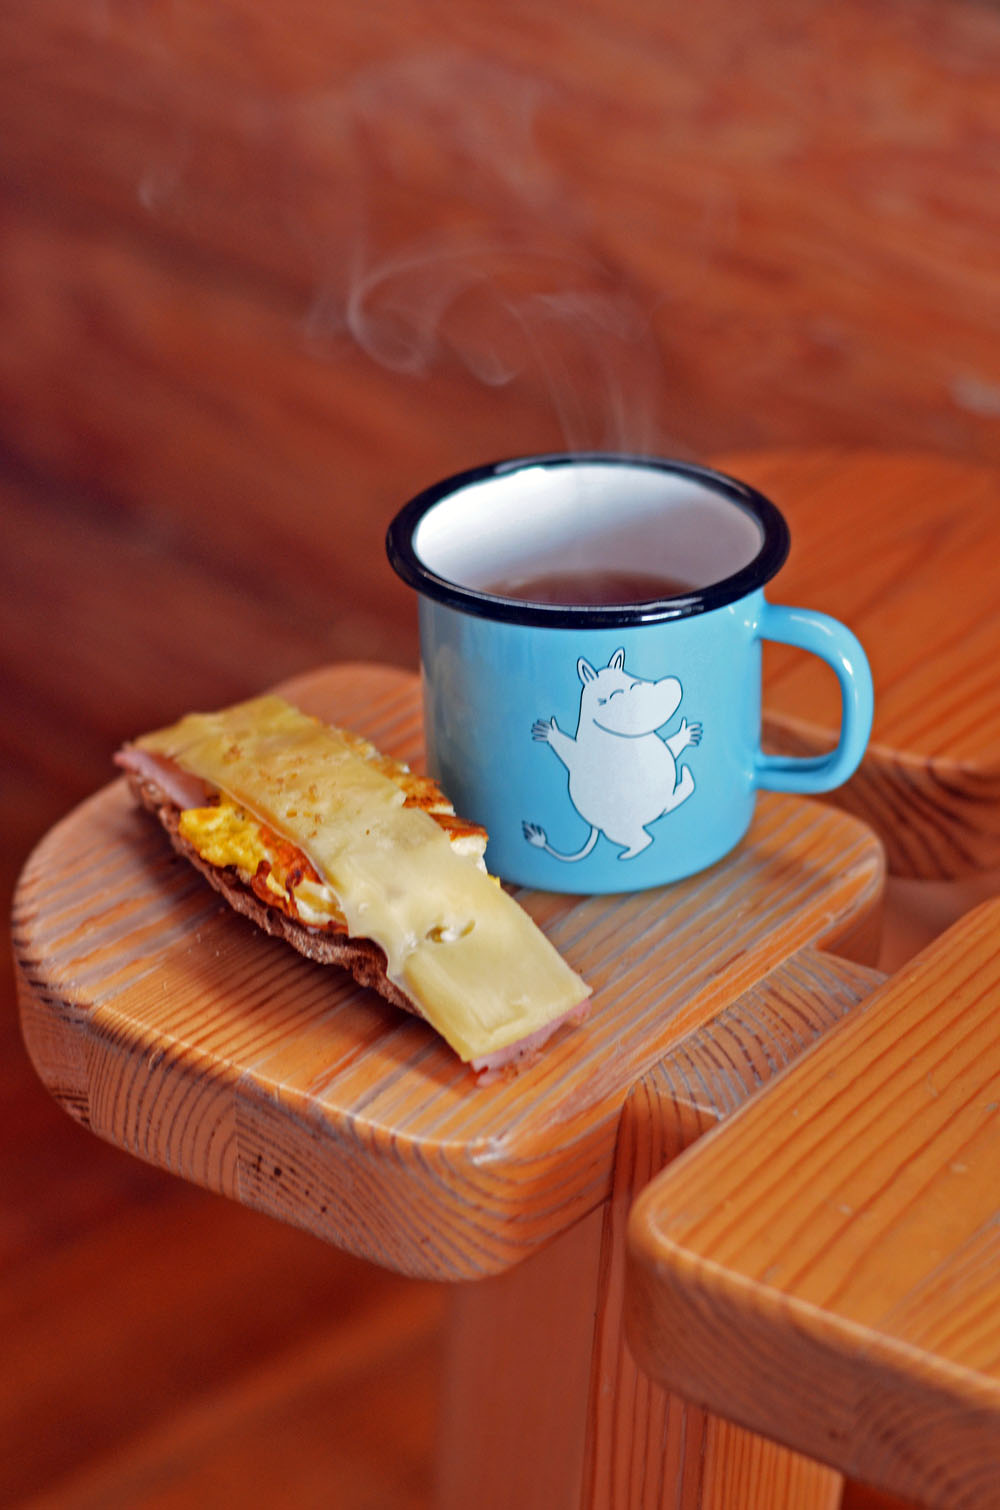 blue-moomin-mug-and-rye-bread-slice